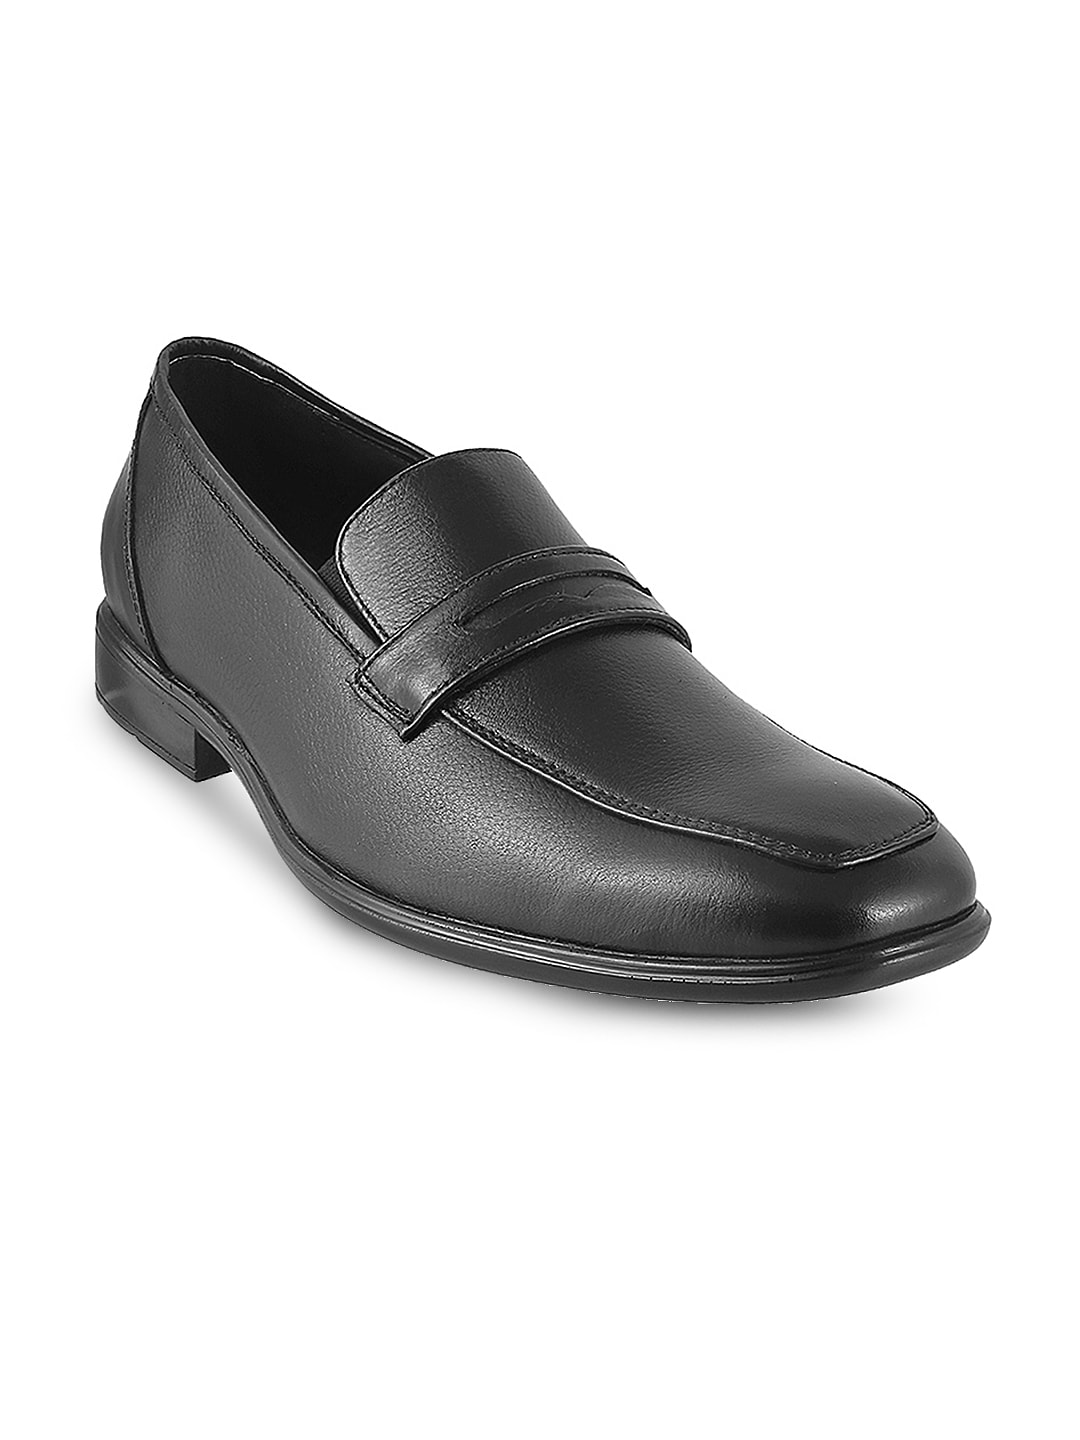 Metro Men Black Solid Leather Slip-Ons image